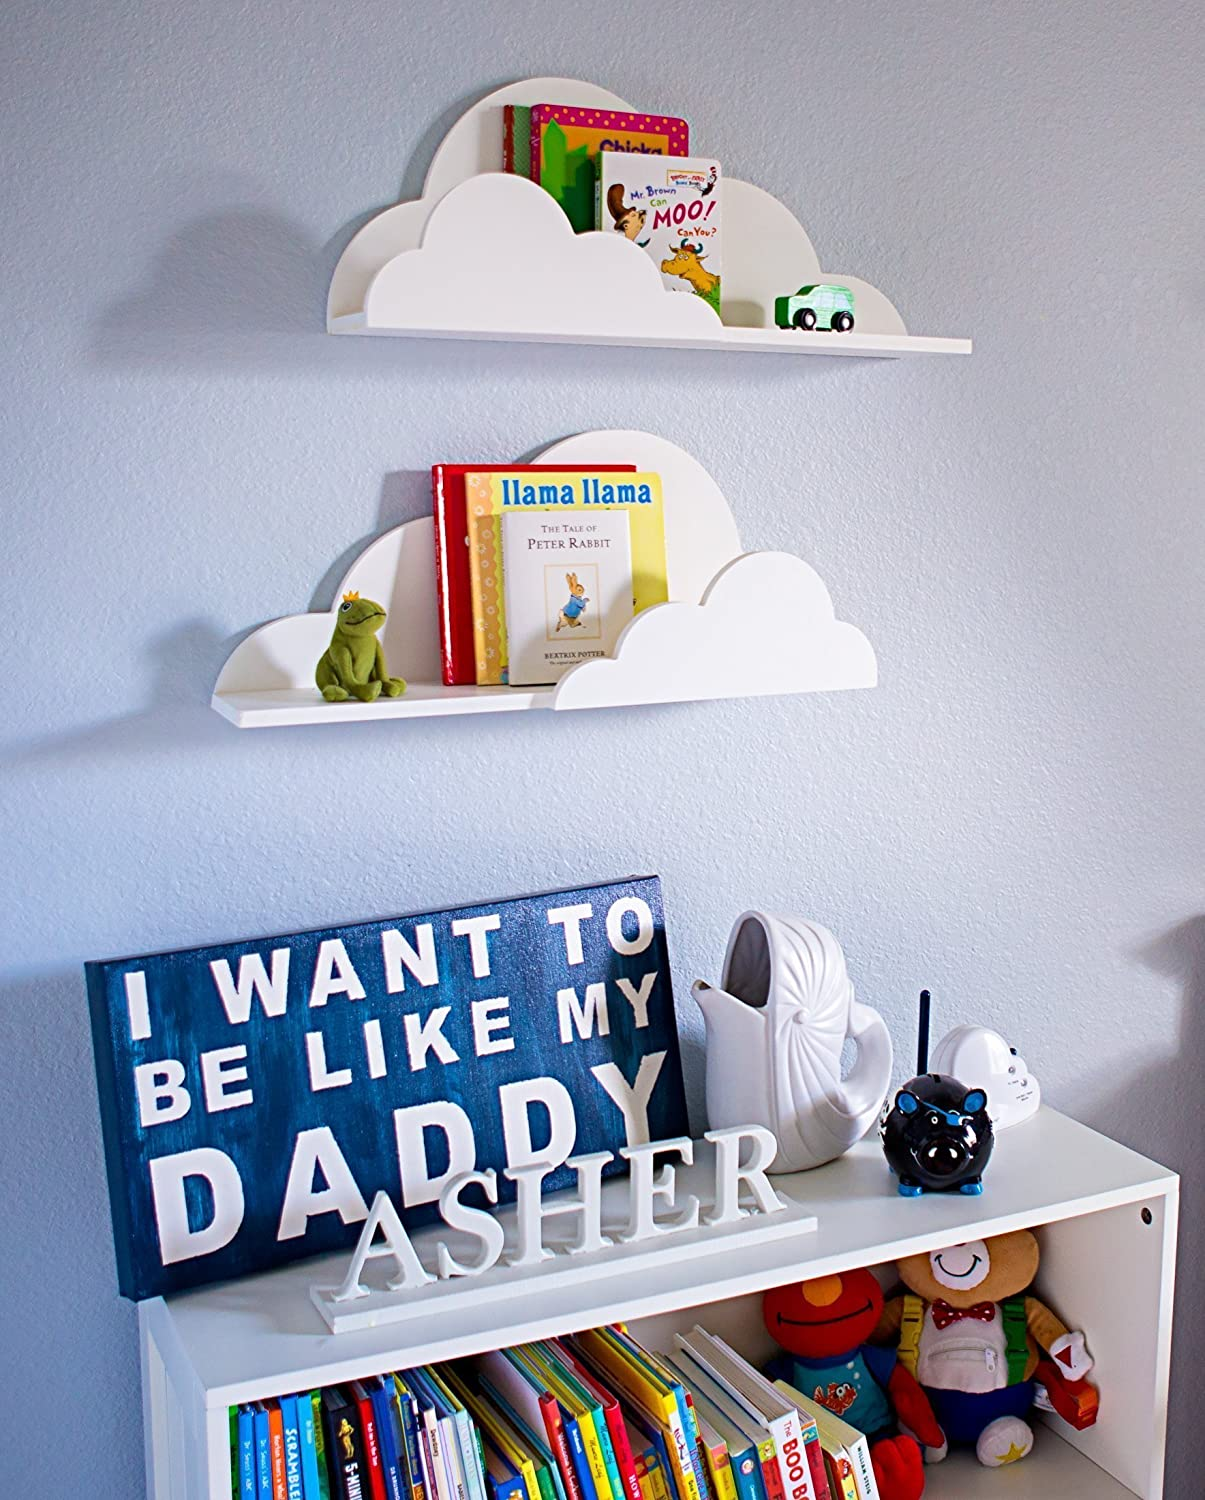 Cloud Shelf For Kids Room Baby Nursery Wall Decor Hanging Cloud Shelves -  Decorations For Bedroom Wall Artwork Clouds Shelving Baby Children Room Kids